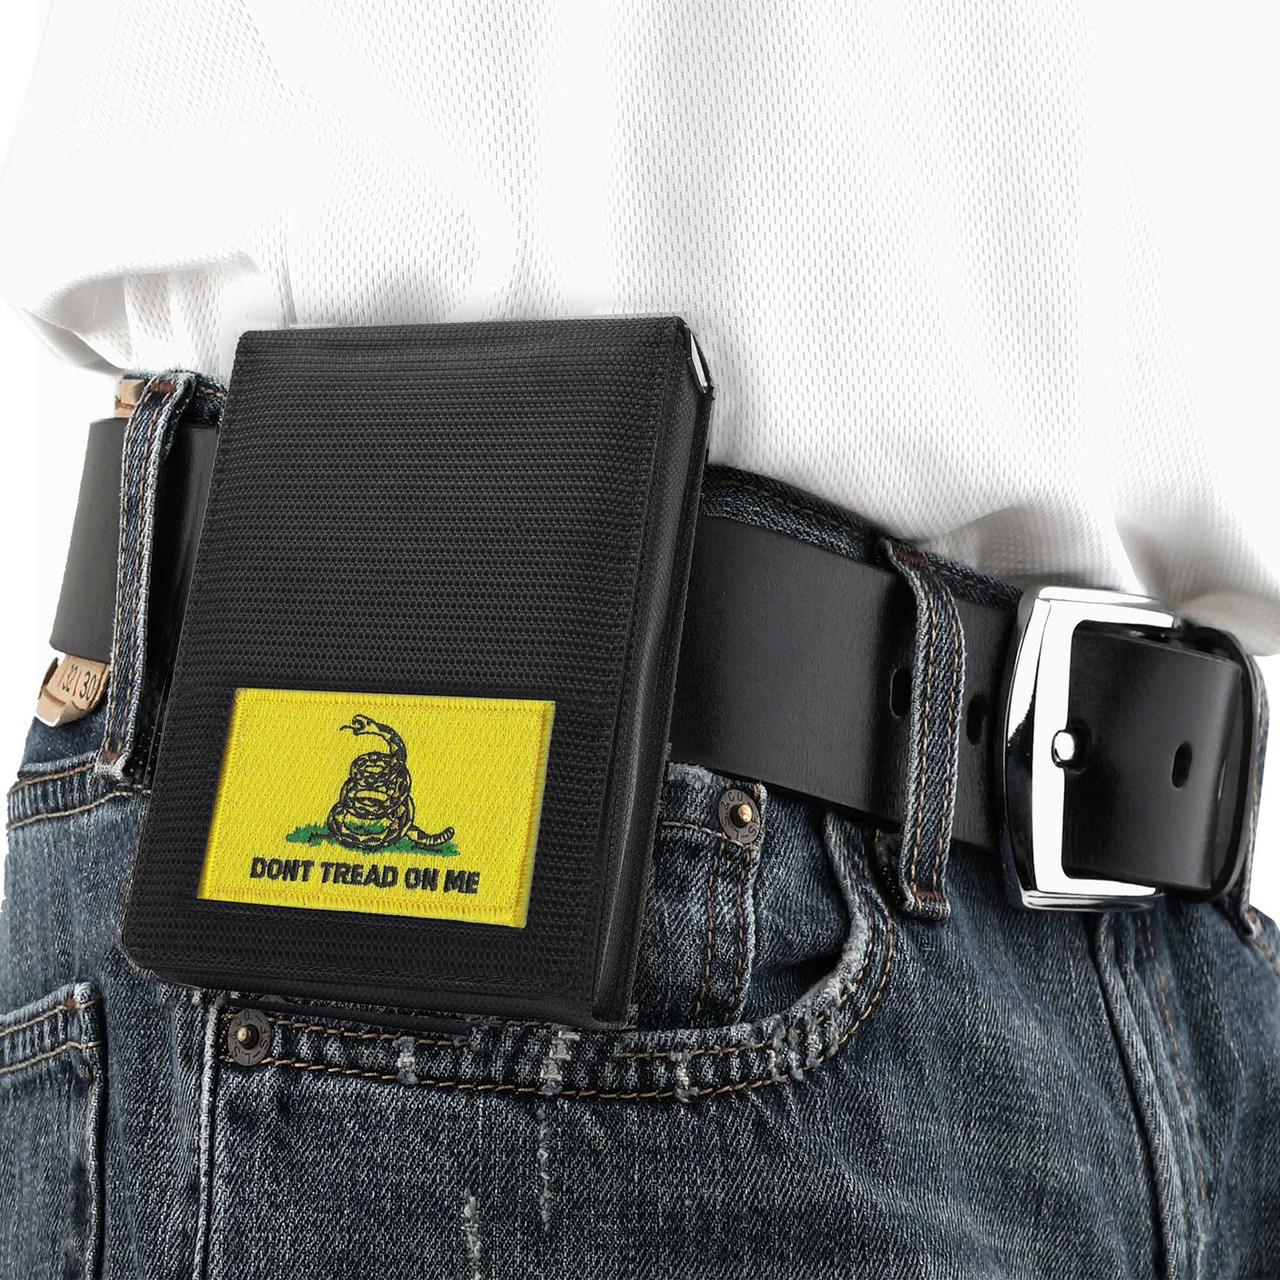 Ruger Security 9 Compact Don't Tread on Me Holster